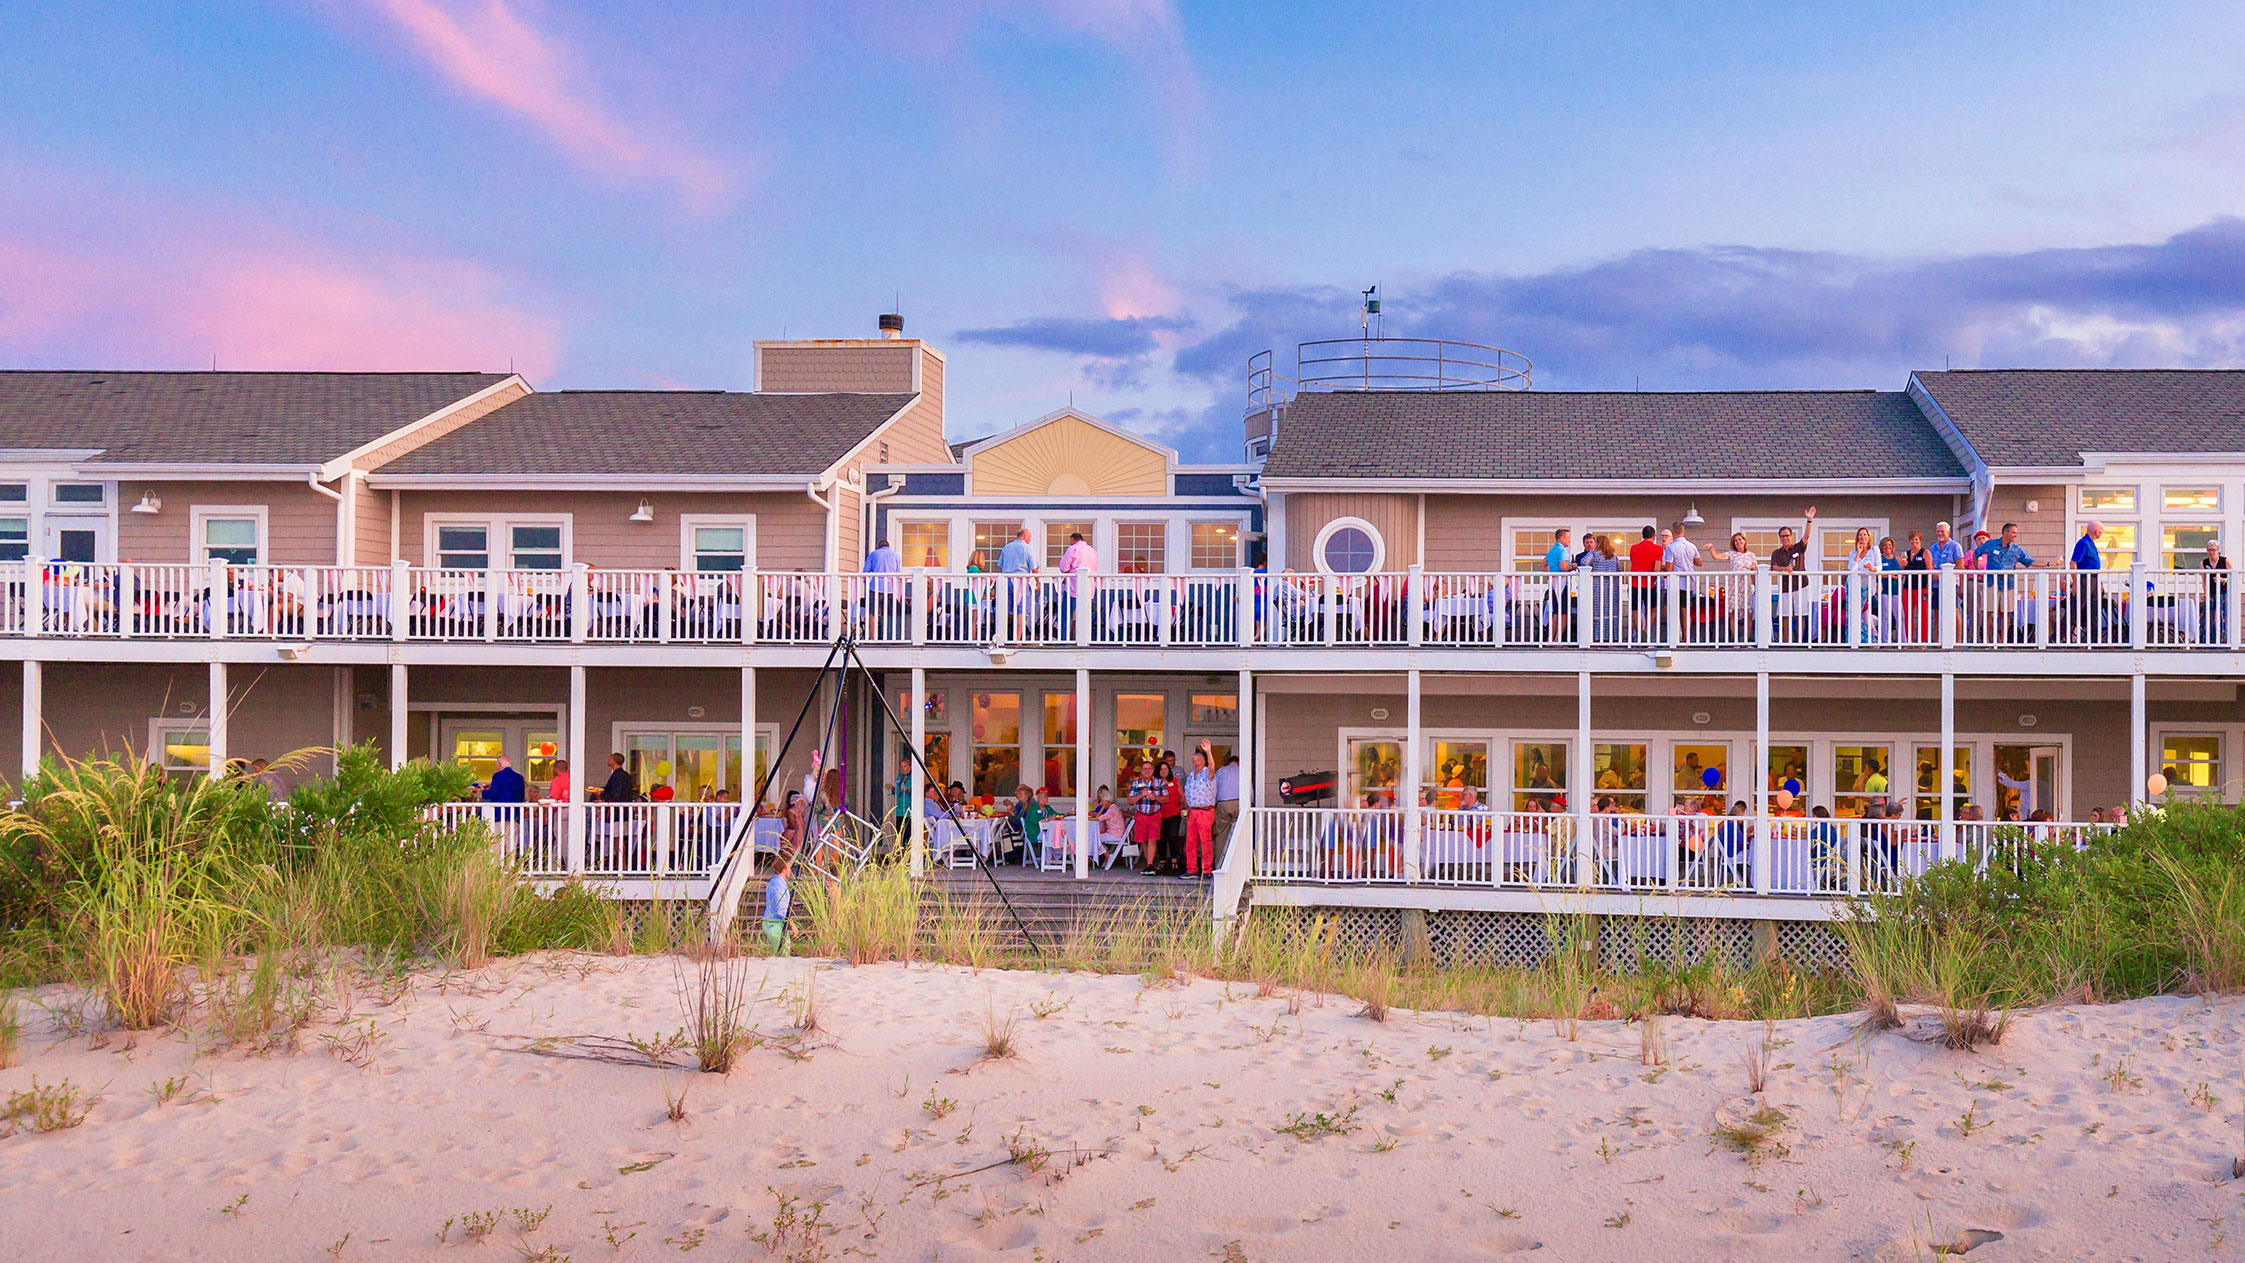 Beach special events venue with people on the back decks.